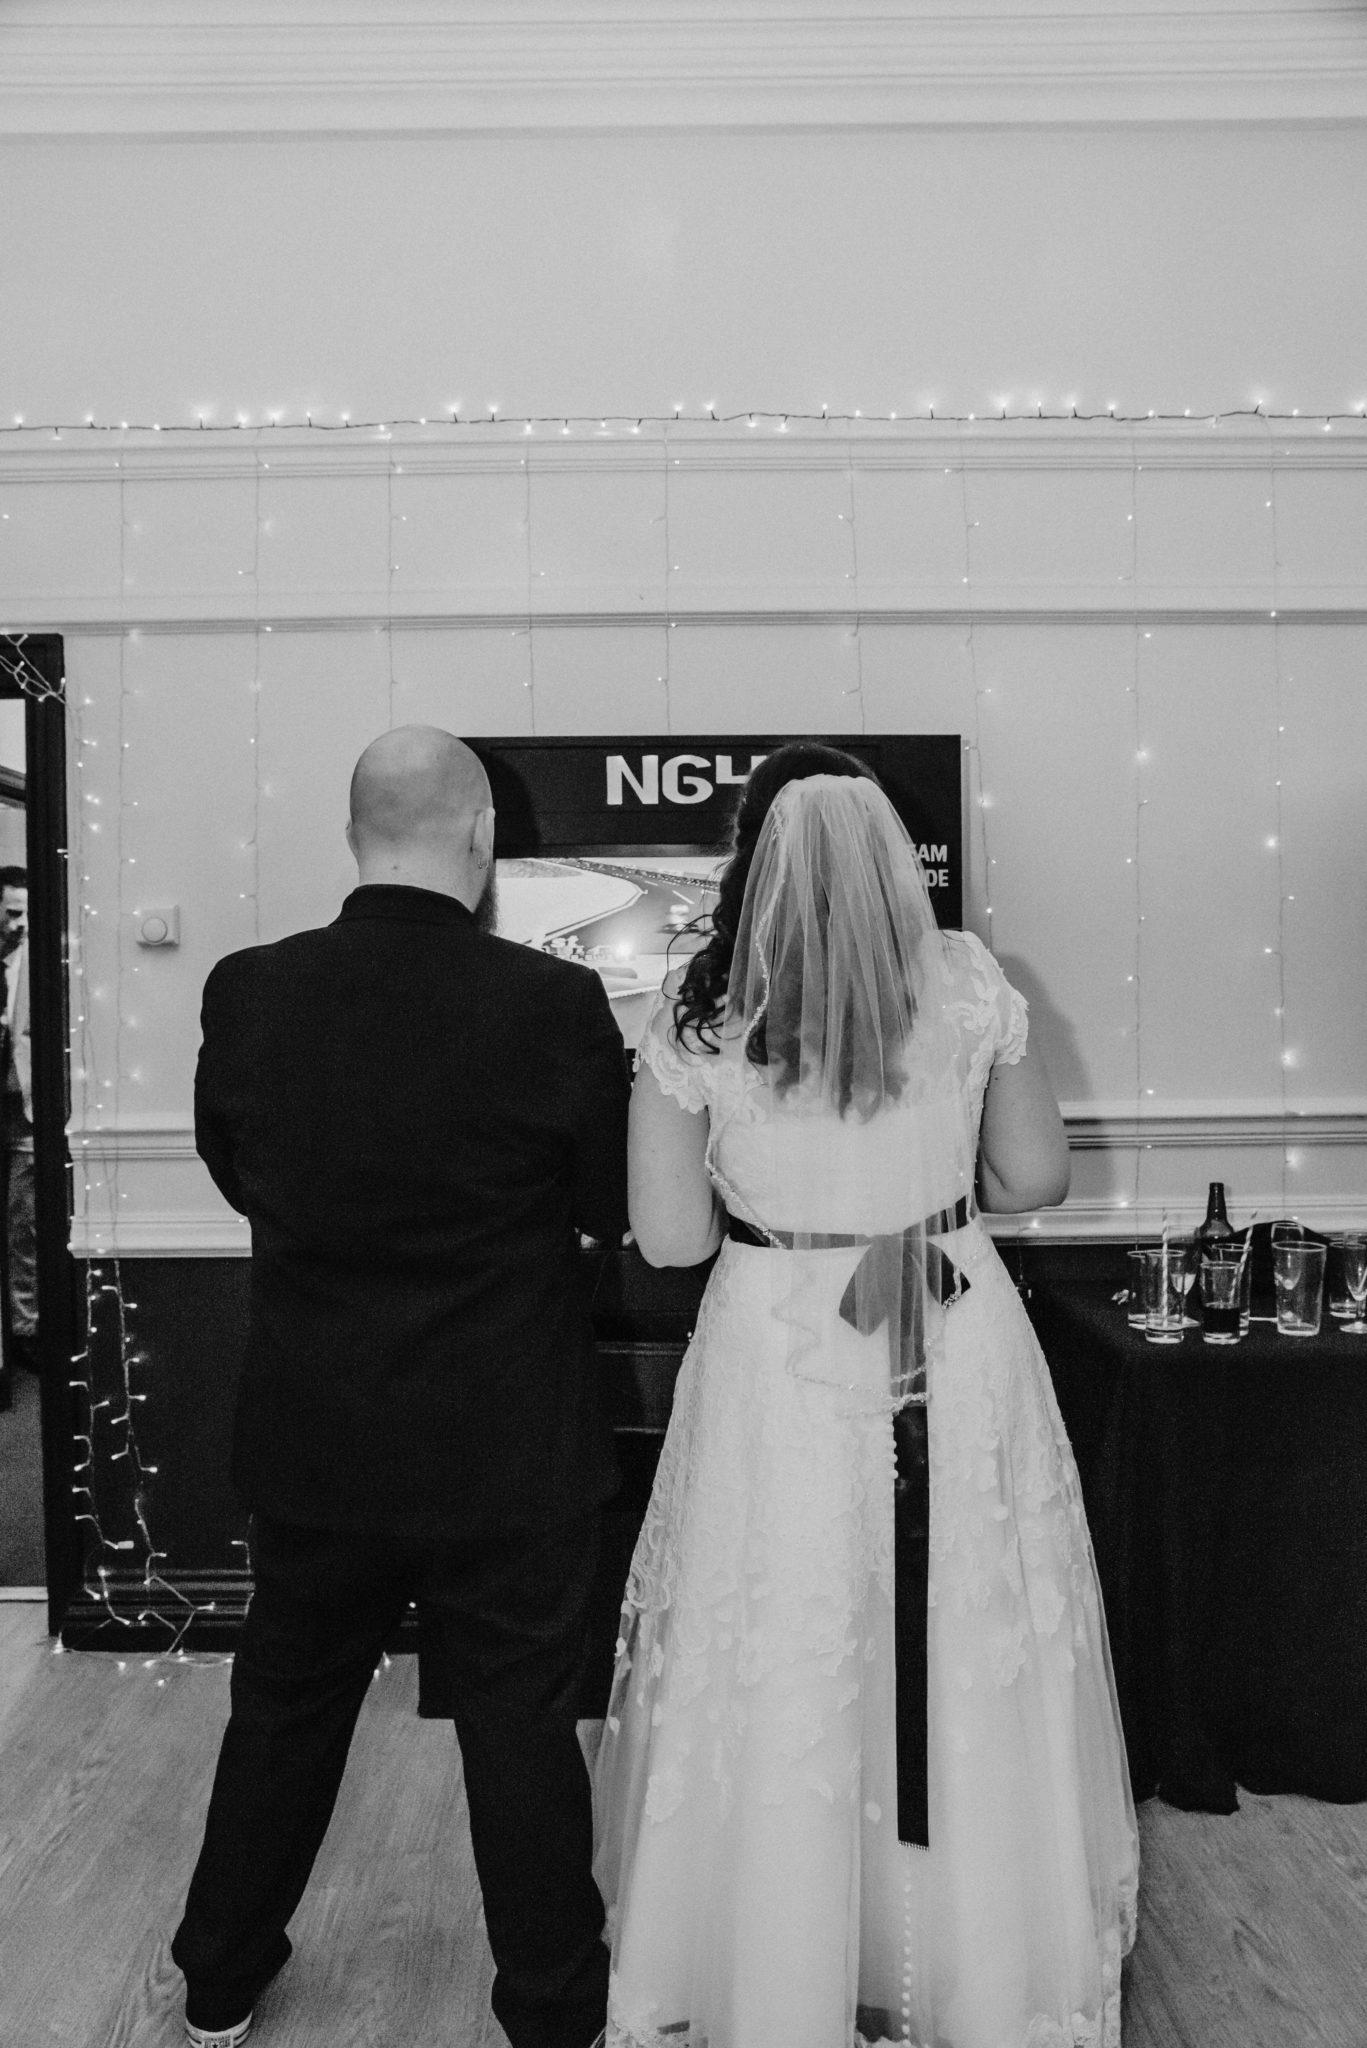 Wedding first dance at the Shenley Cricket club, Sarah and Sam playing NG4 playstaion gaming station